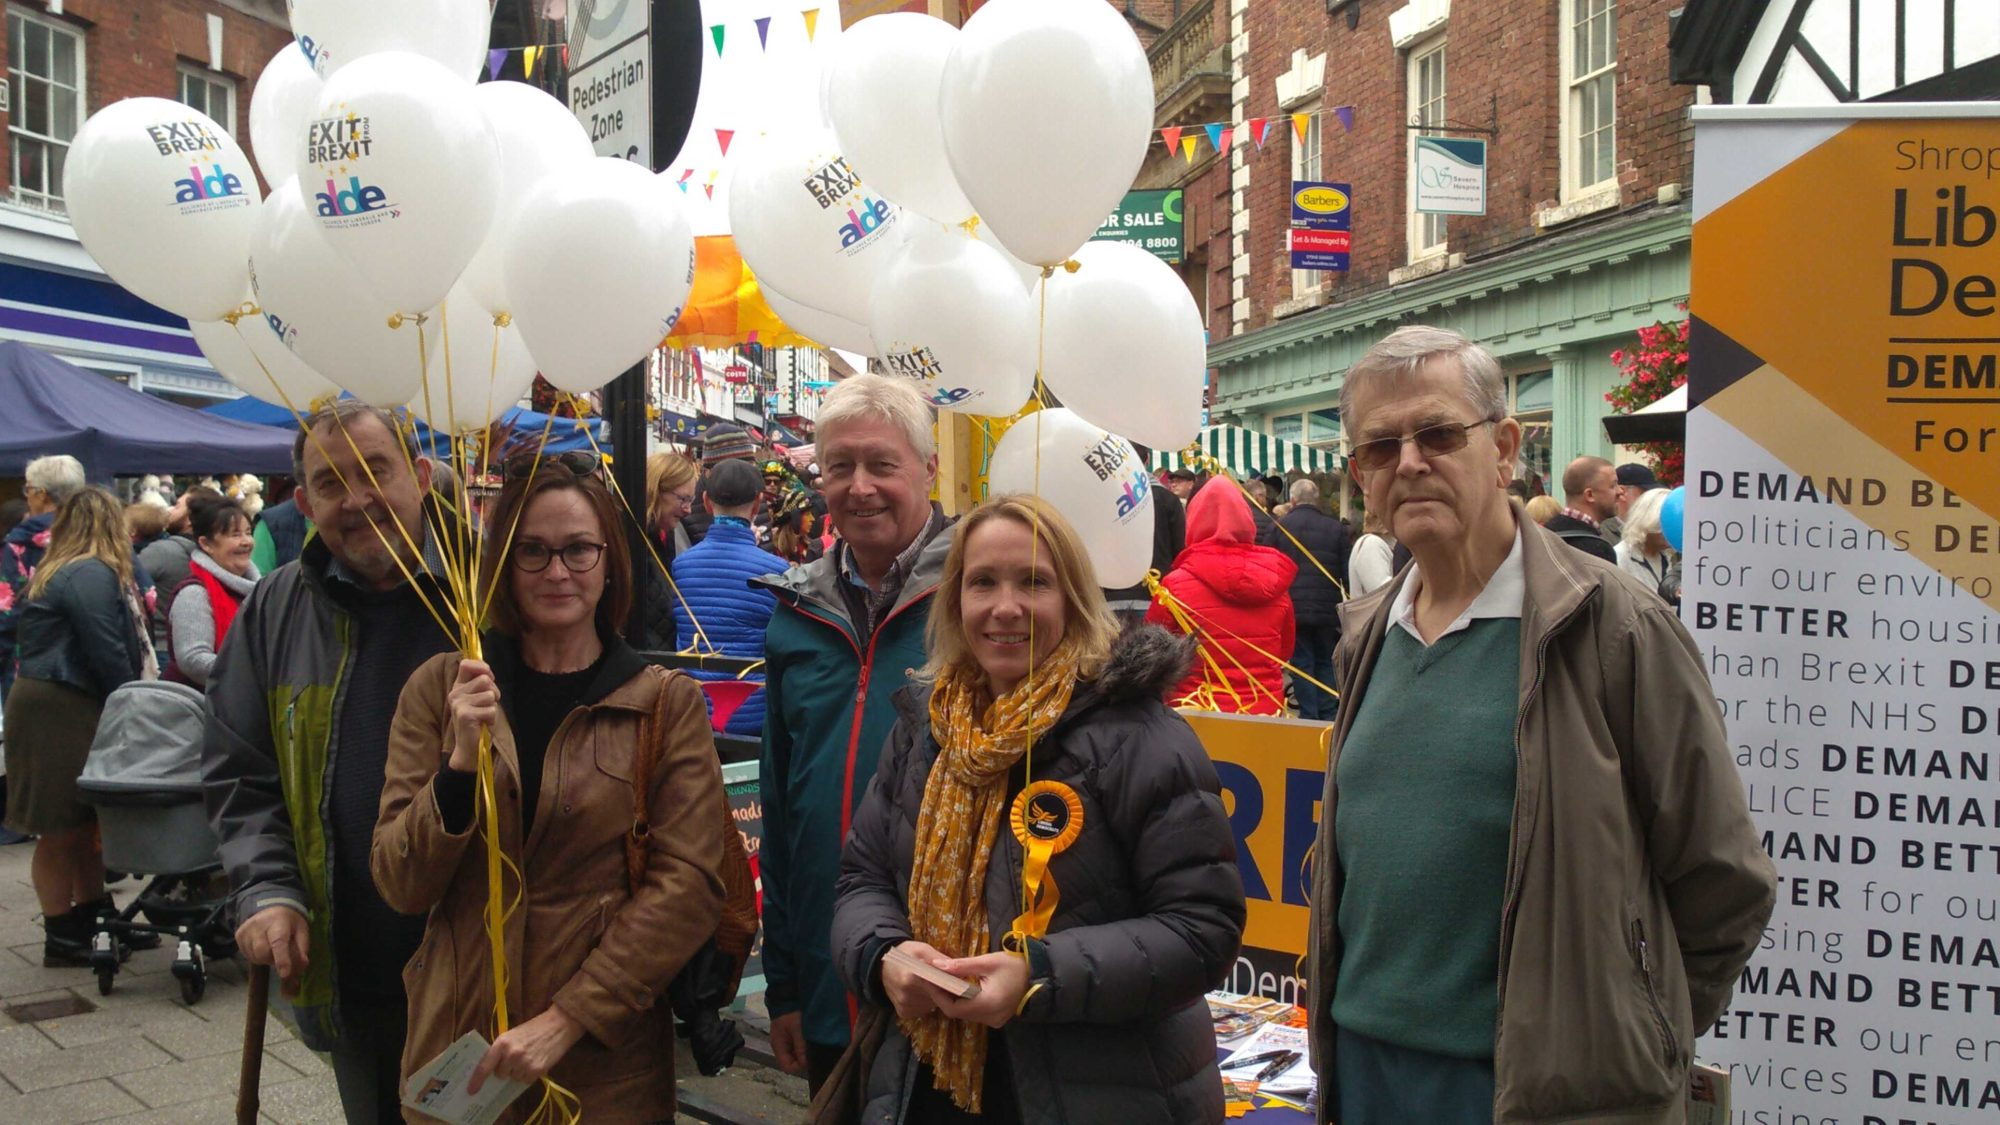 Lib Dems at the Blackberry Fair to talk to voters